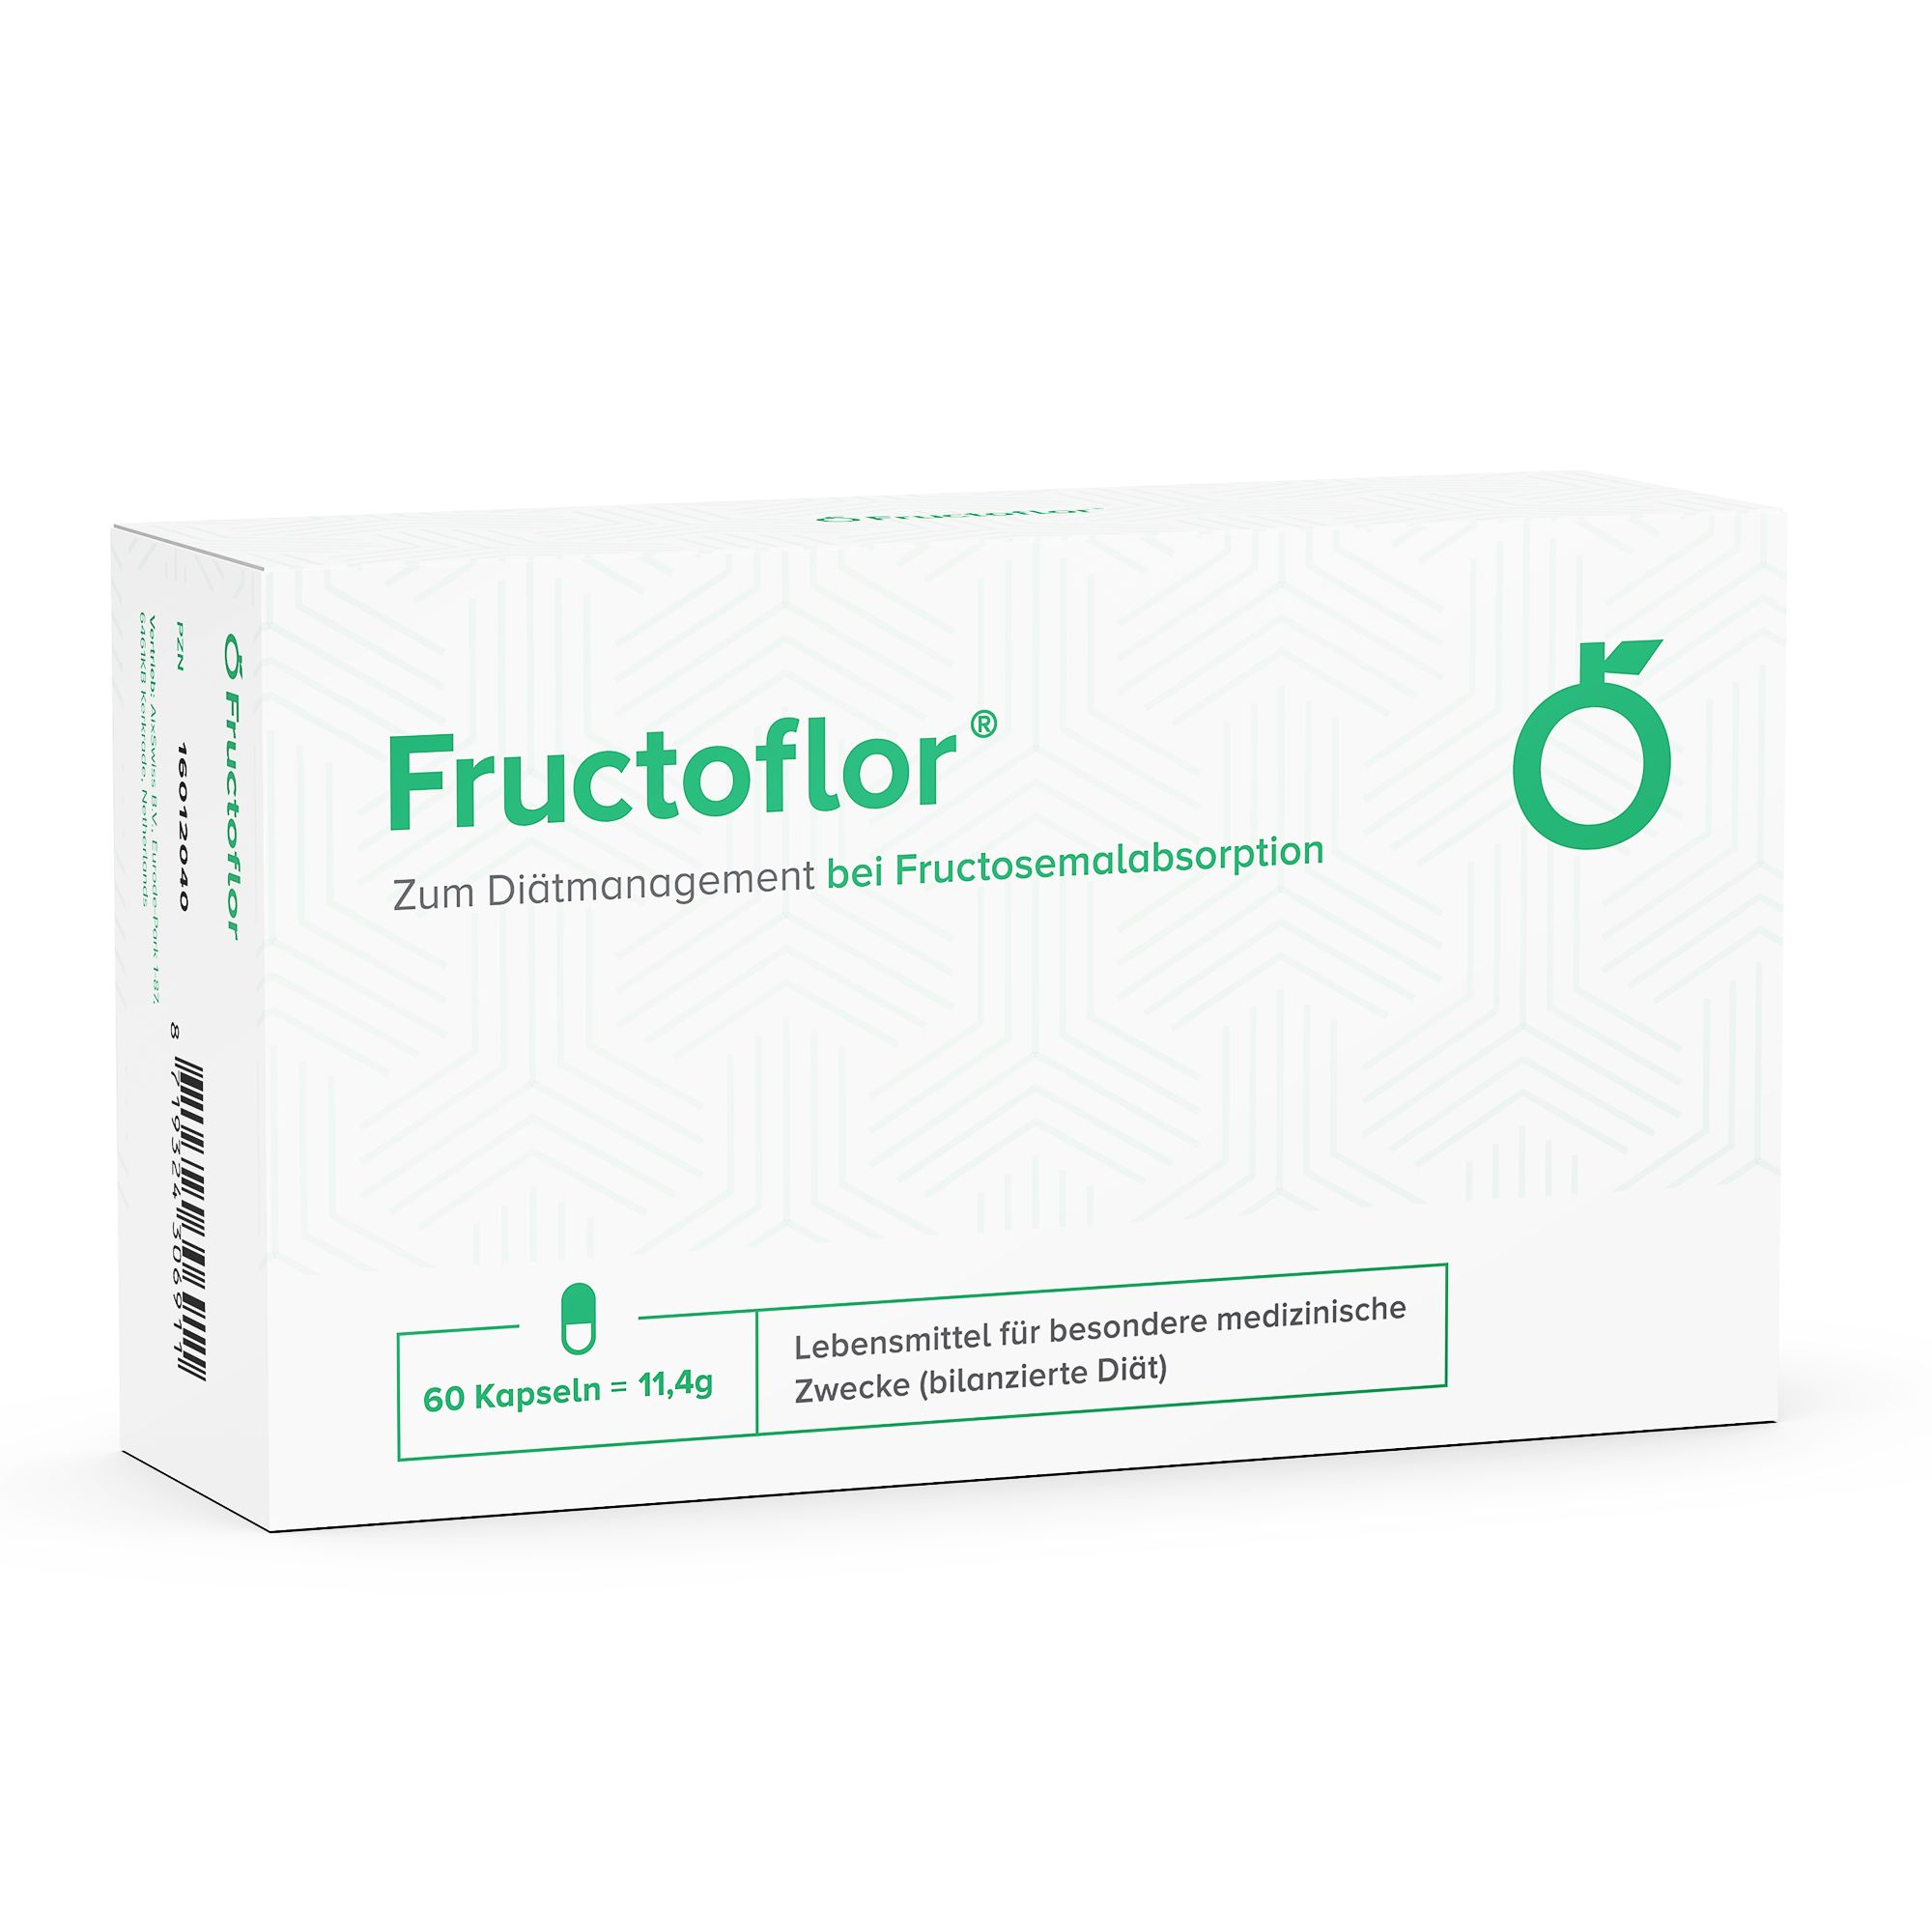 Image of Fructoflor®